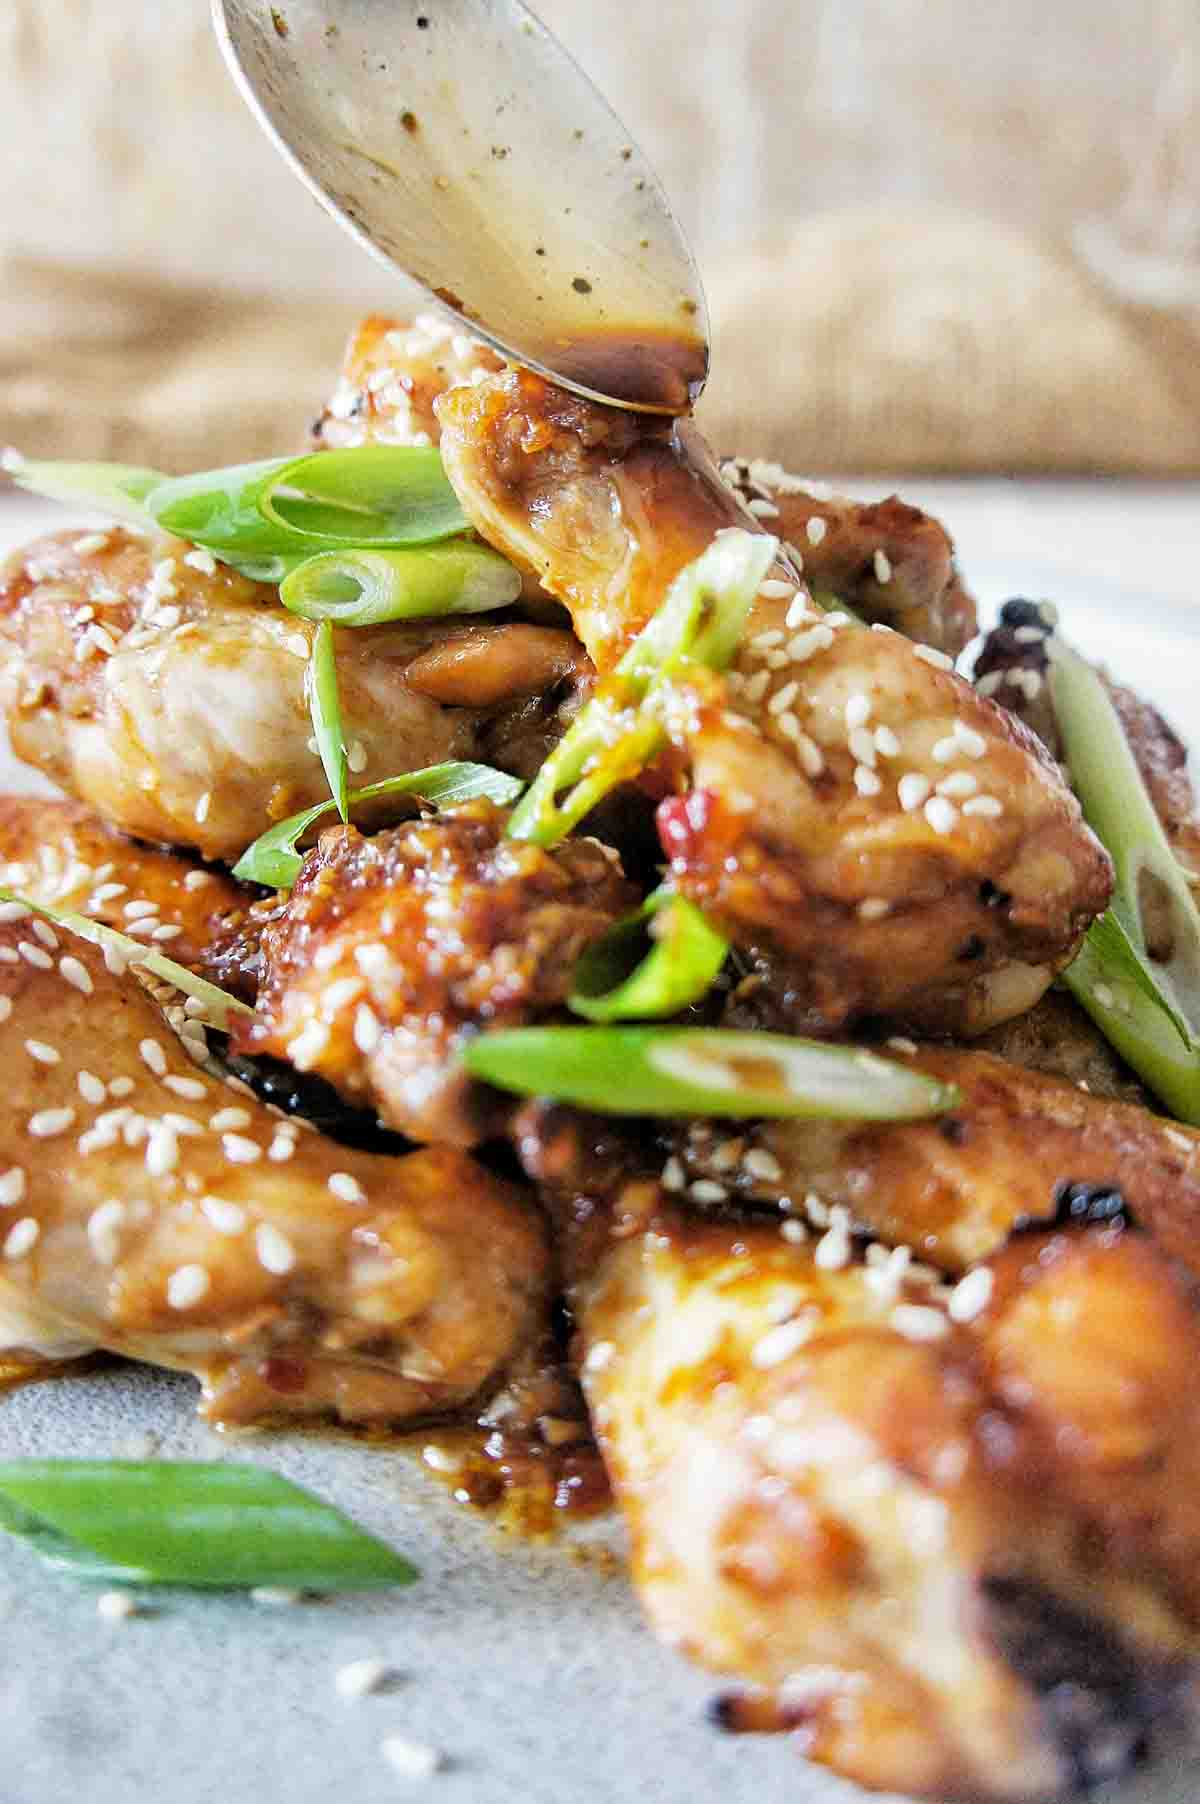 Honey Soy Chicken Wings piled high on a grey plate